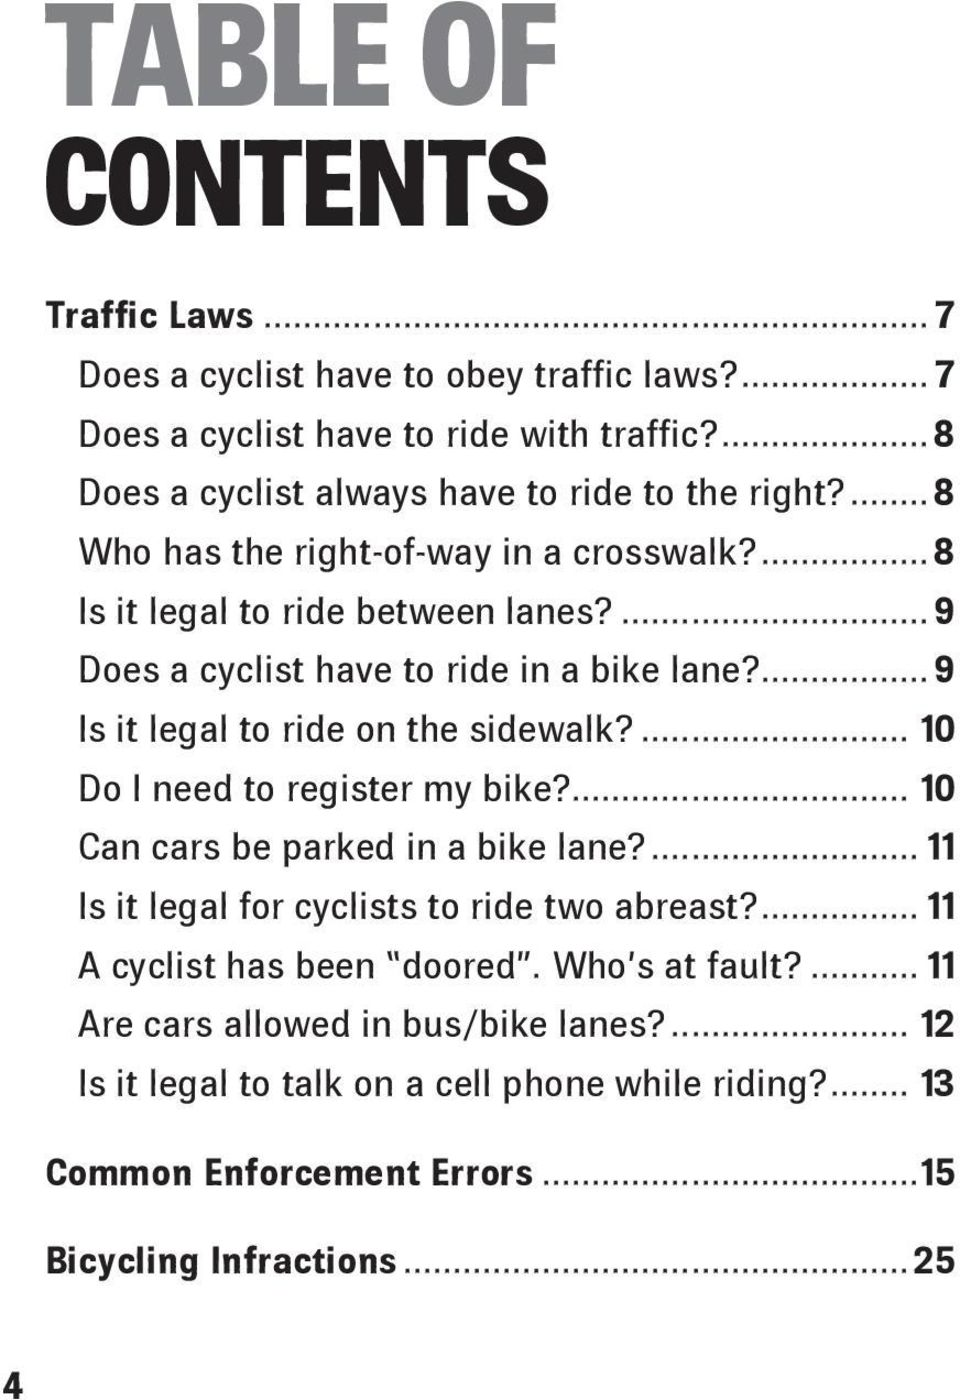 ... 10 Do I need to register my bike?... 10 Can cars be parked in a bike lane?... 11 Is it legal for cyclists to ride two abreast?... 11 A cyclist has been doored.